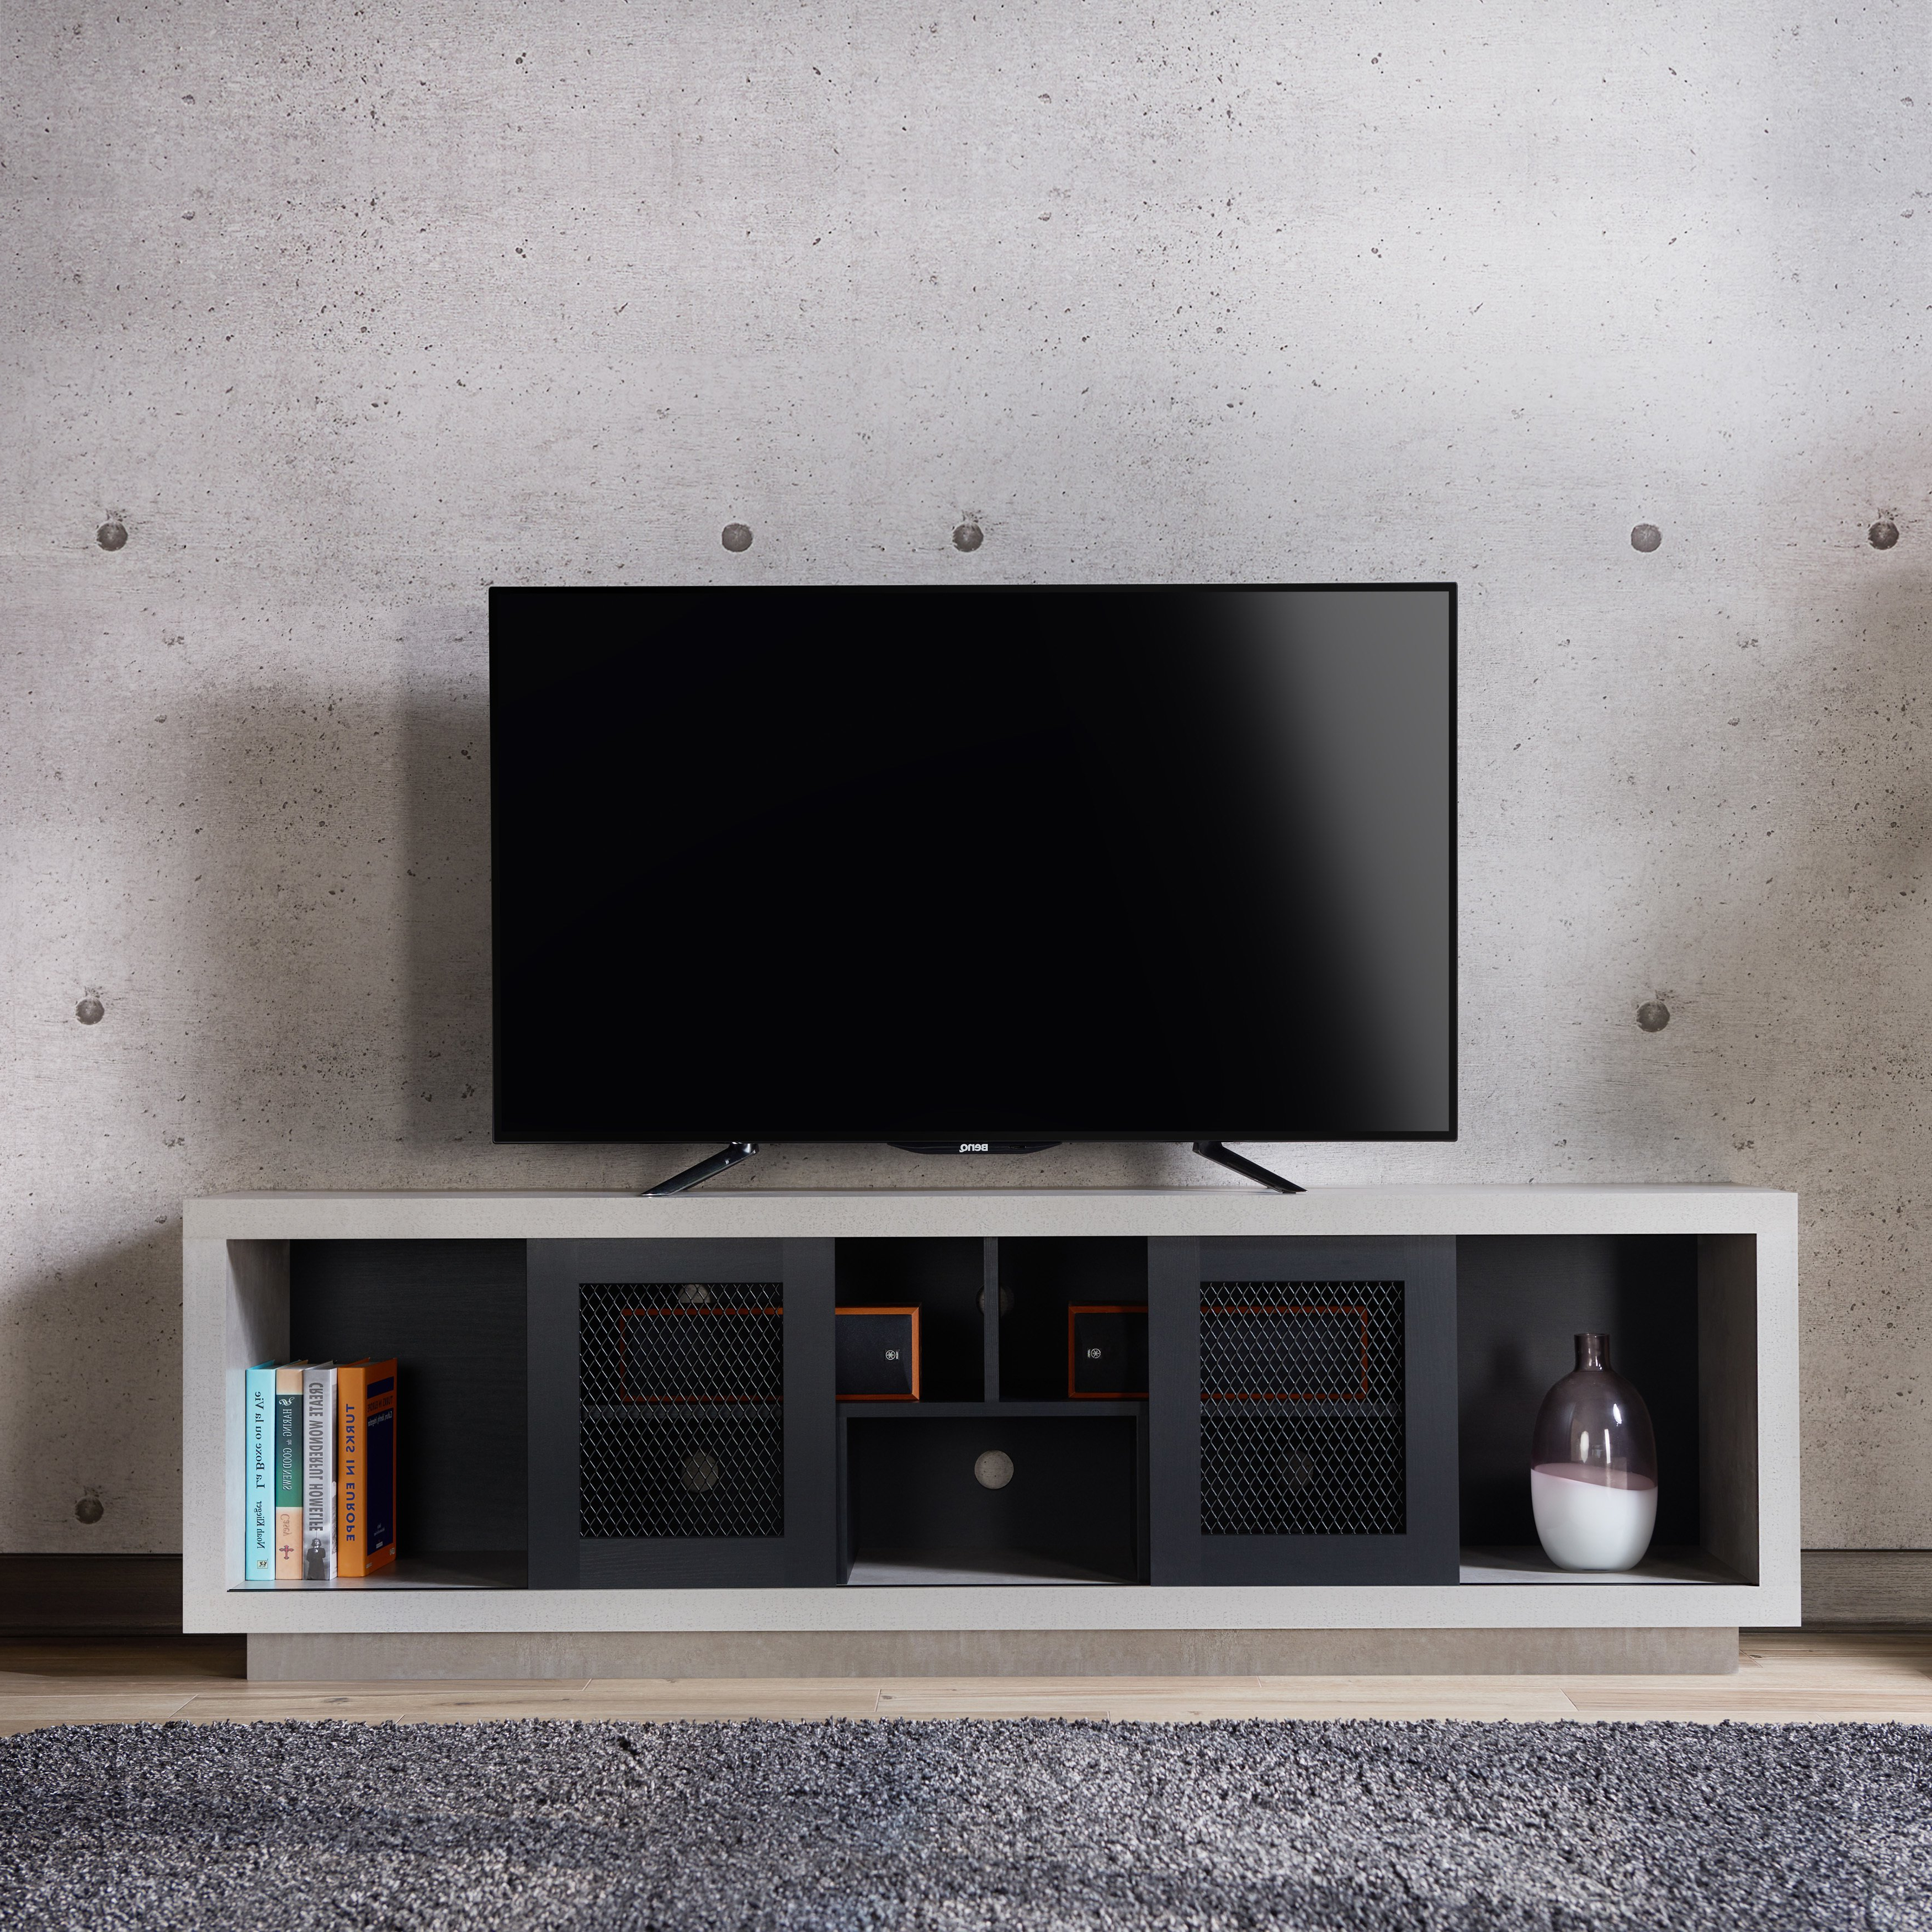 Shop Furniture Of America Selefin Industrial Cement Like Multi Throughout Casey Grey 54 Inch Tv Stands (Gallery 5 of 20)